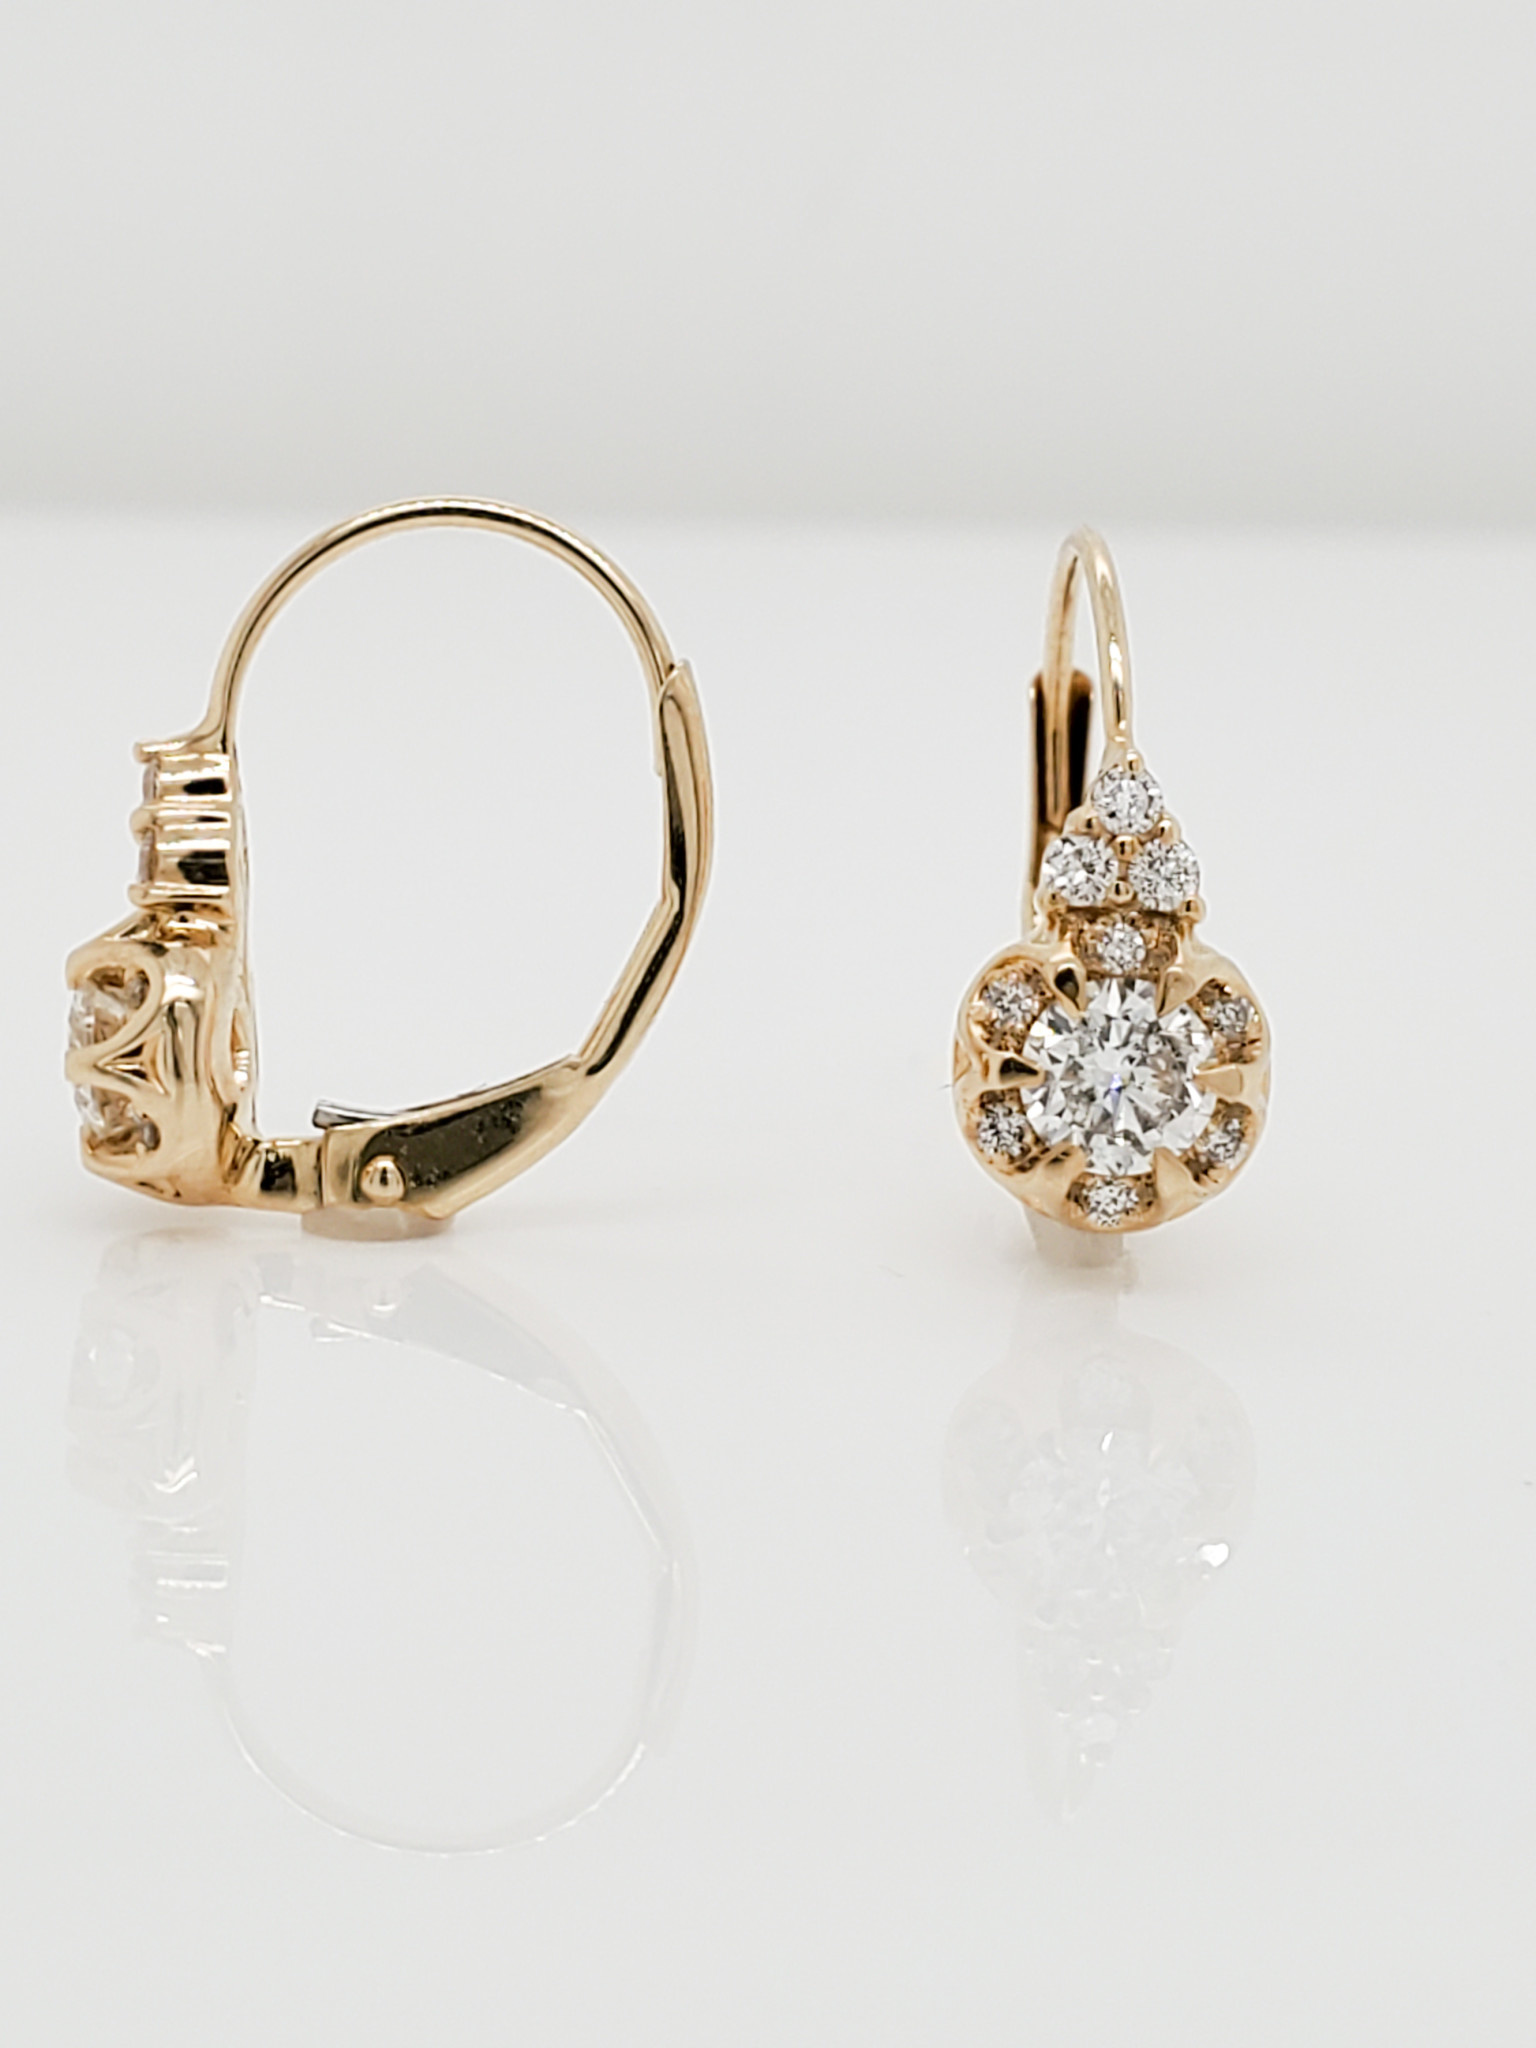 14KT Yellow Gold Hinged Floral Diamond Earrings 0.60 CTTW